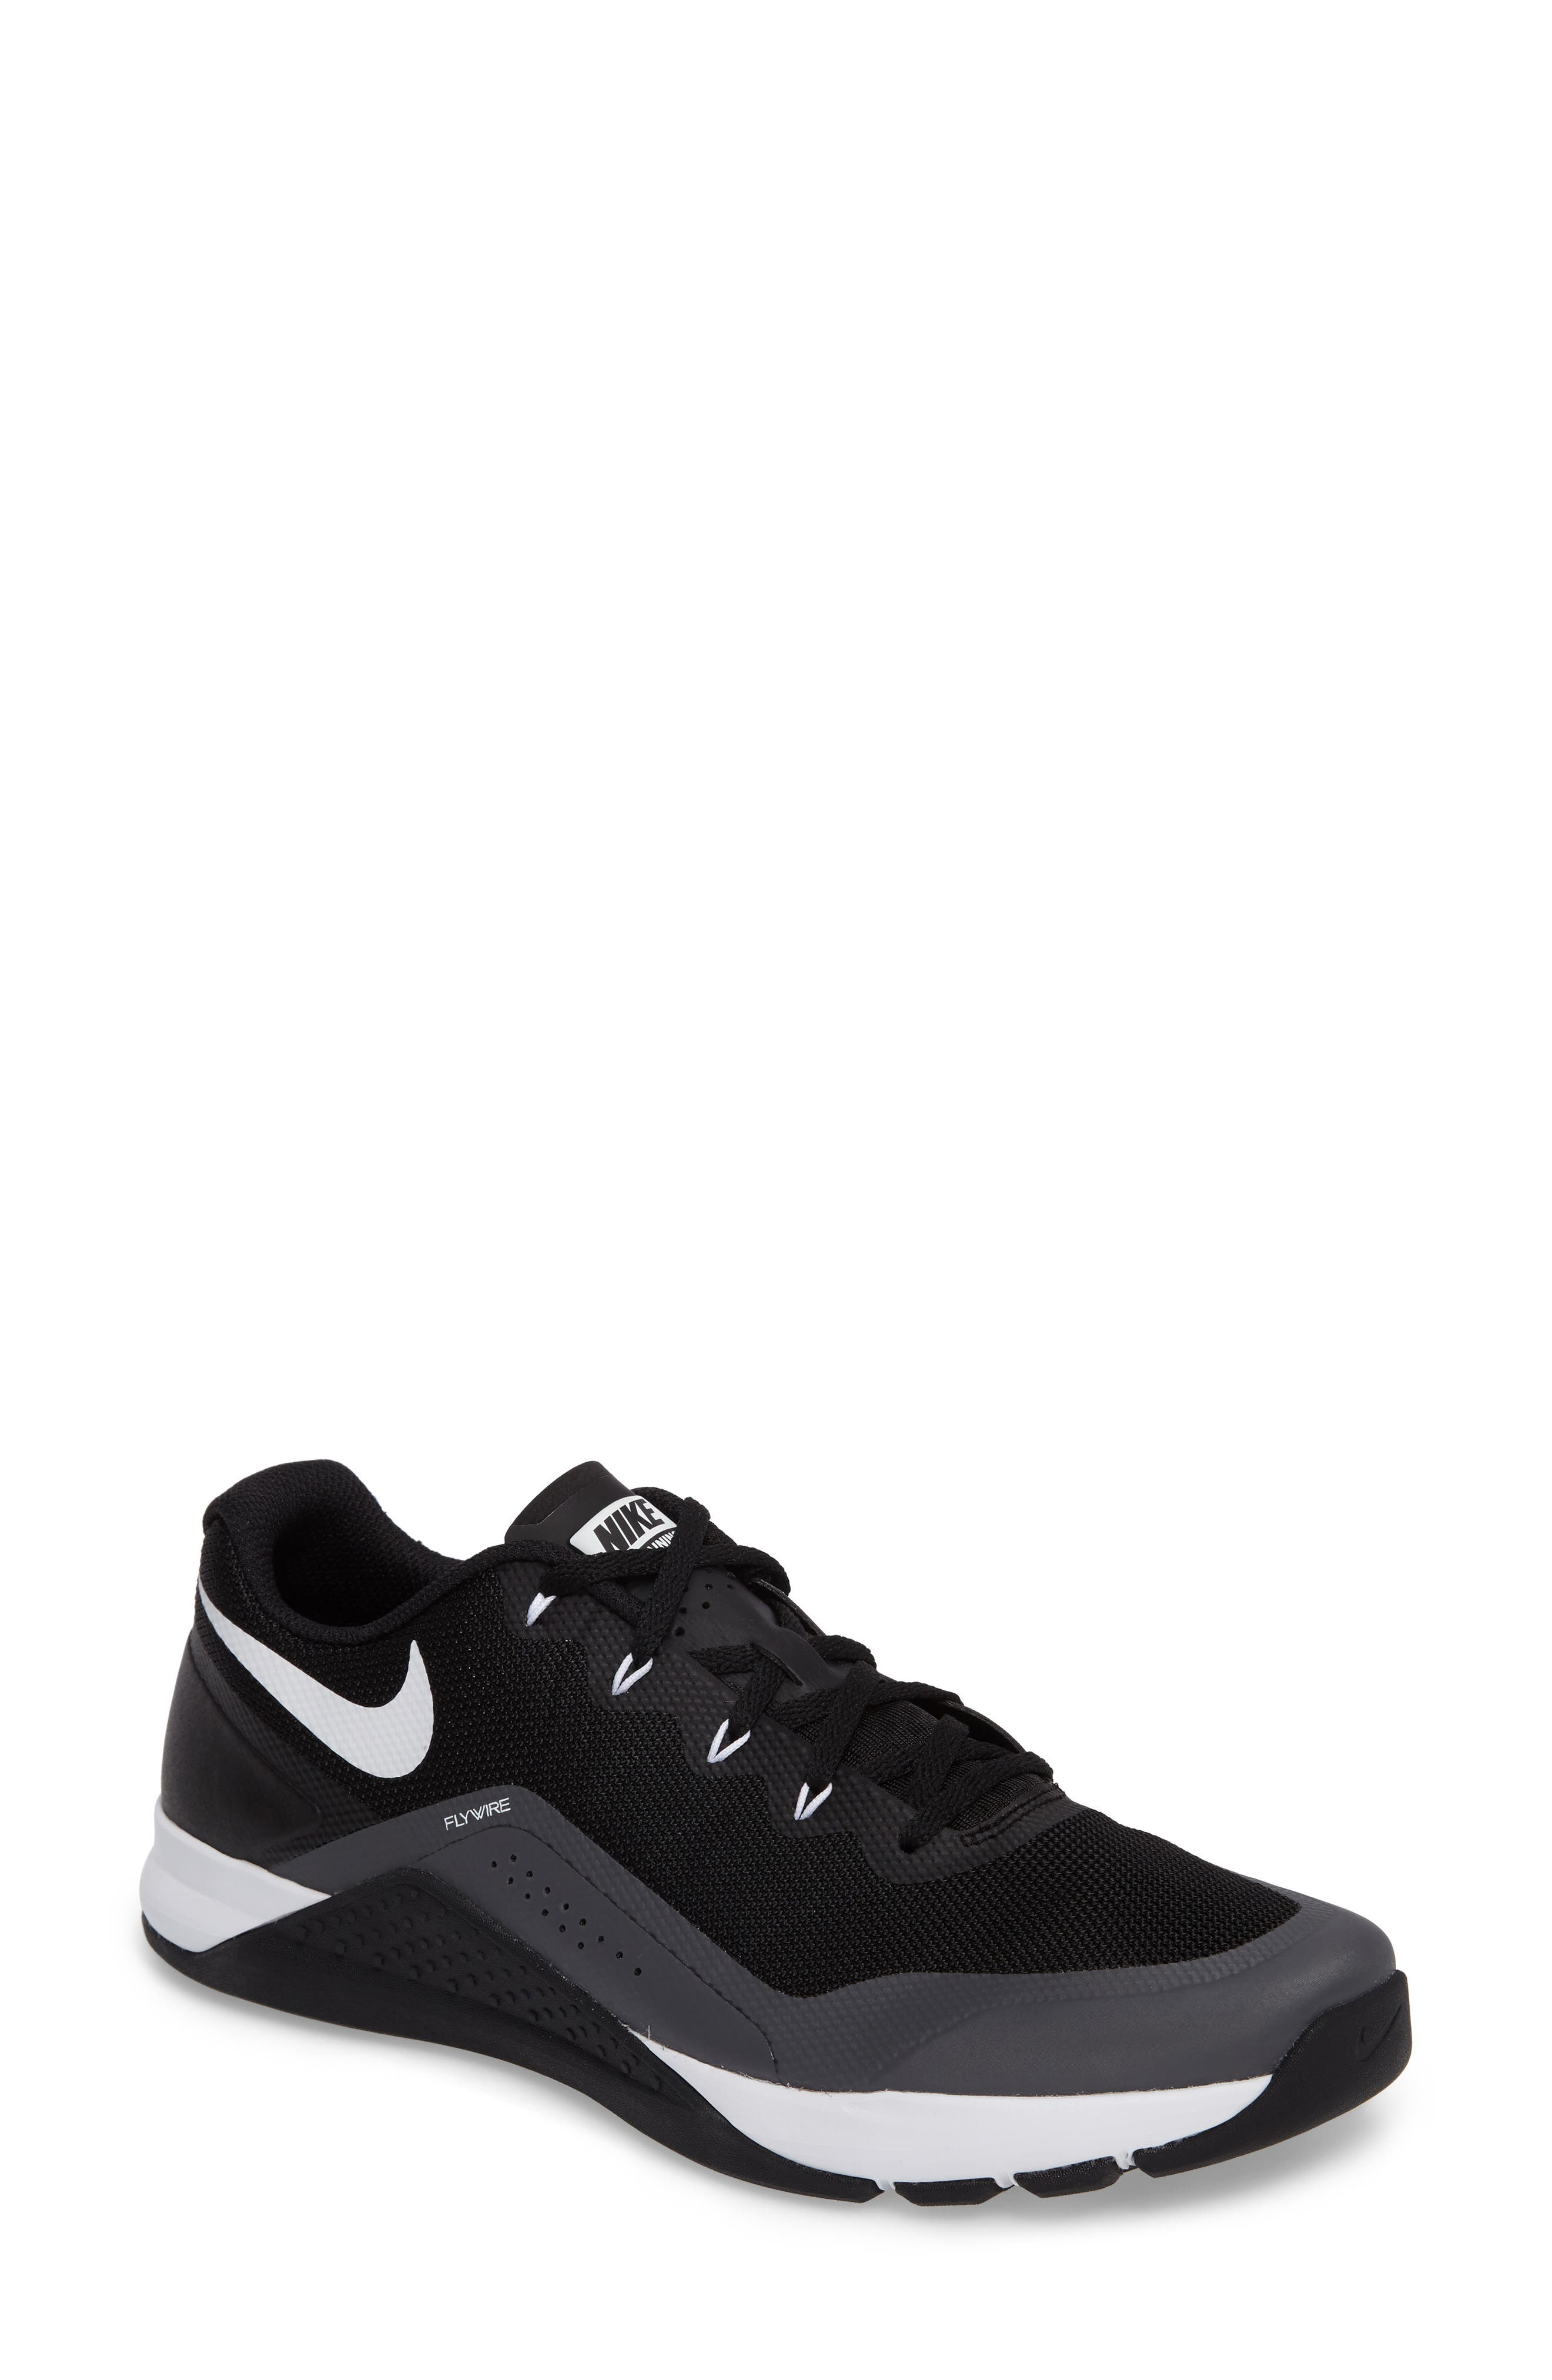 NIKE Metcon Repper DSX Training Shoe, Main, color, 007